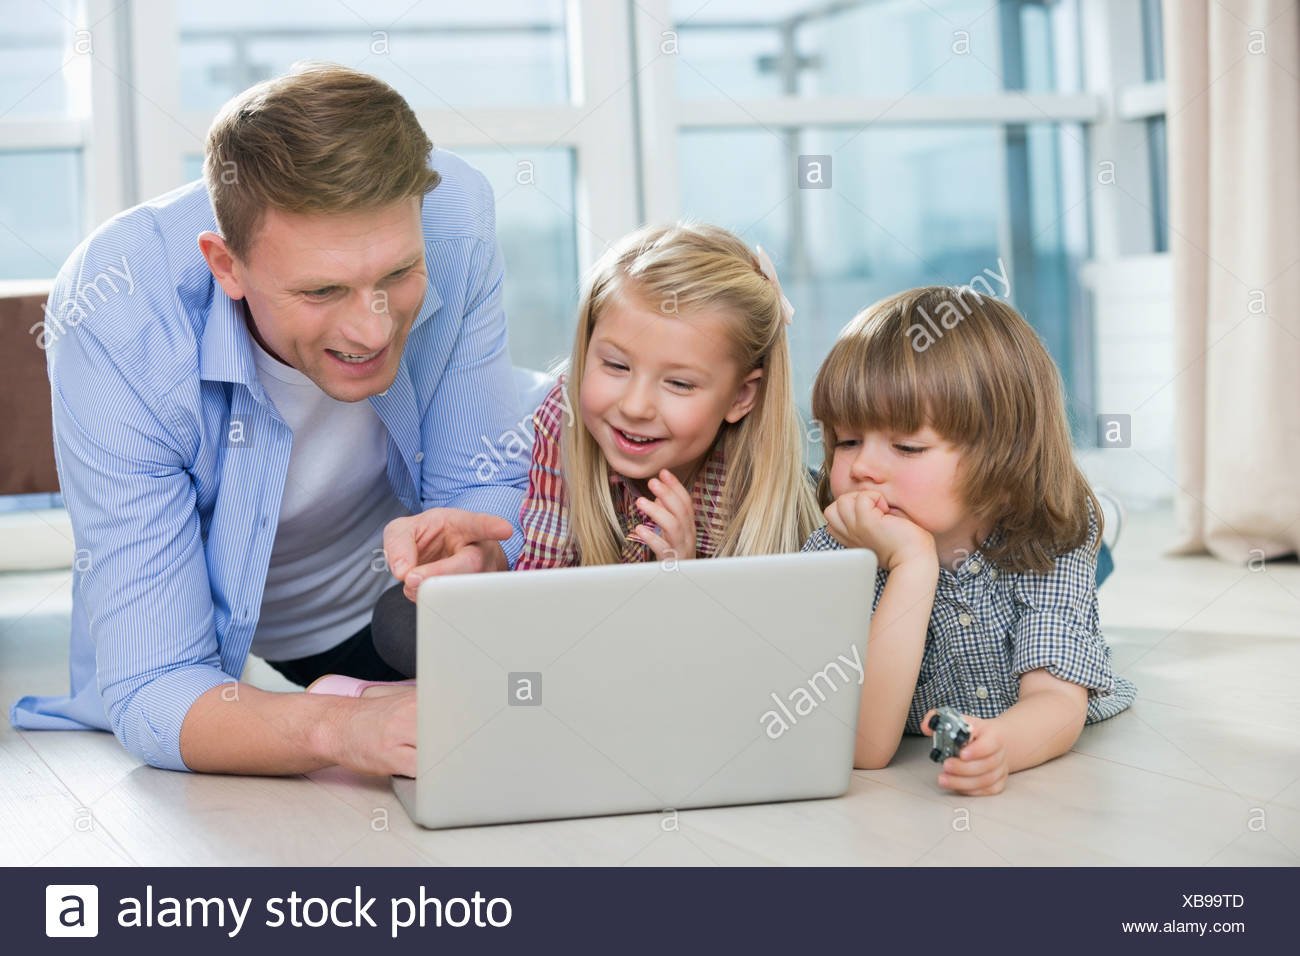 Happy father showing something to children on laptop at home - Stock Image